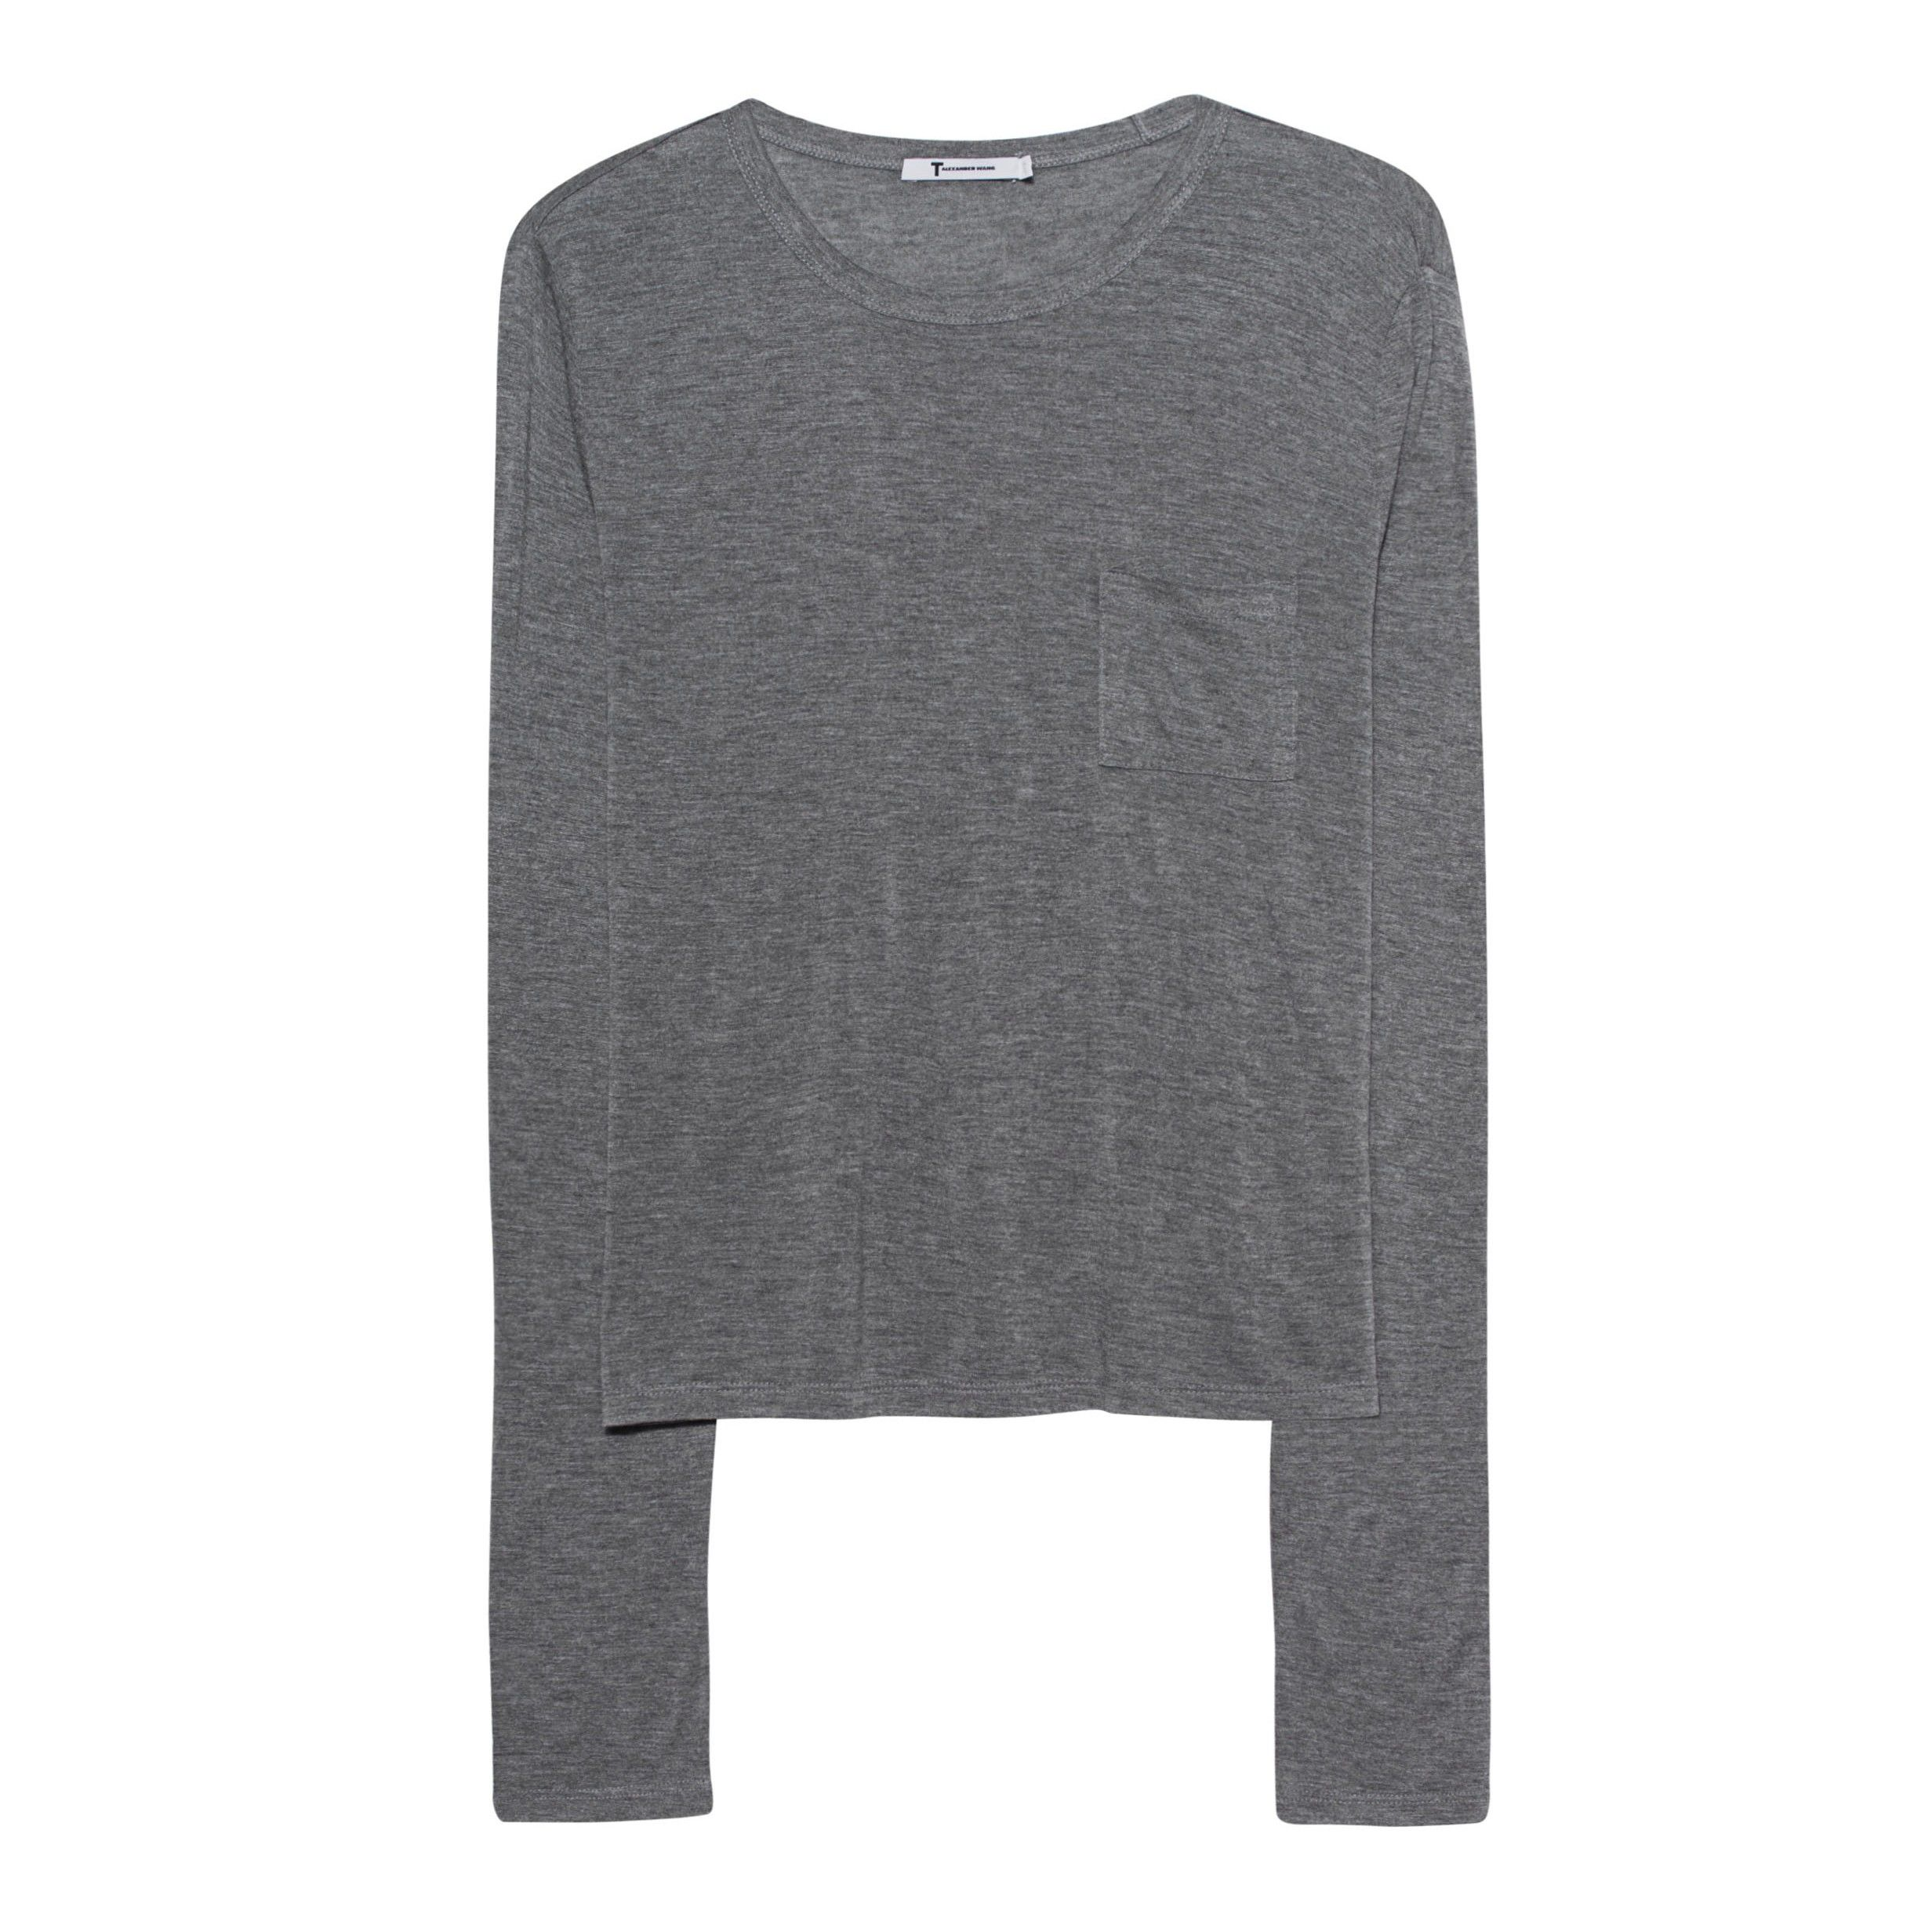 Alexander Wang Grey Pocket Top With Long Sleeves